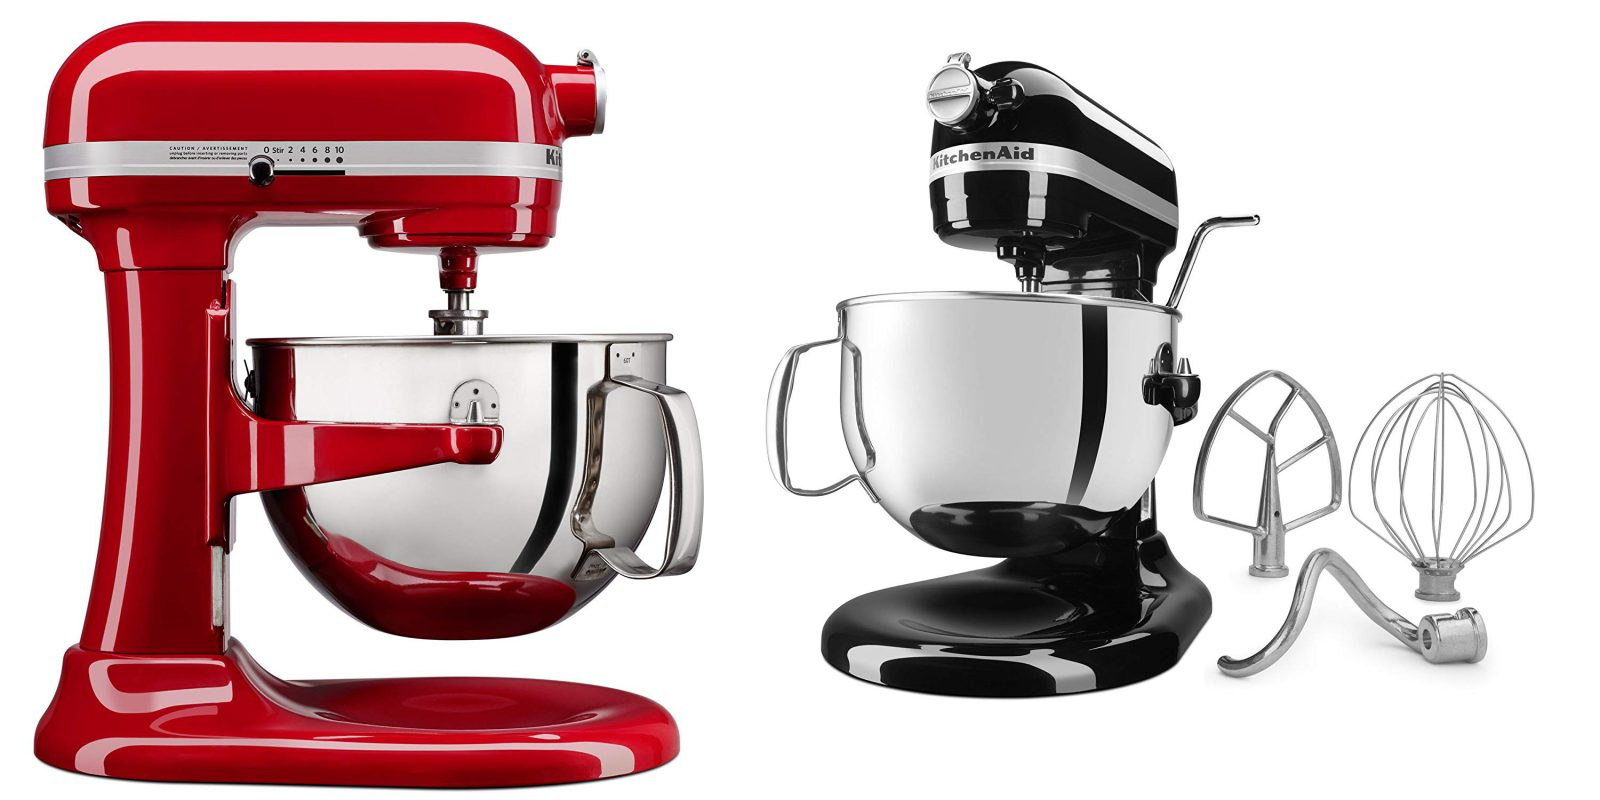 KitchenAid's 6-Qt. Professional Bowl-Lift Stand Mixer